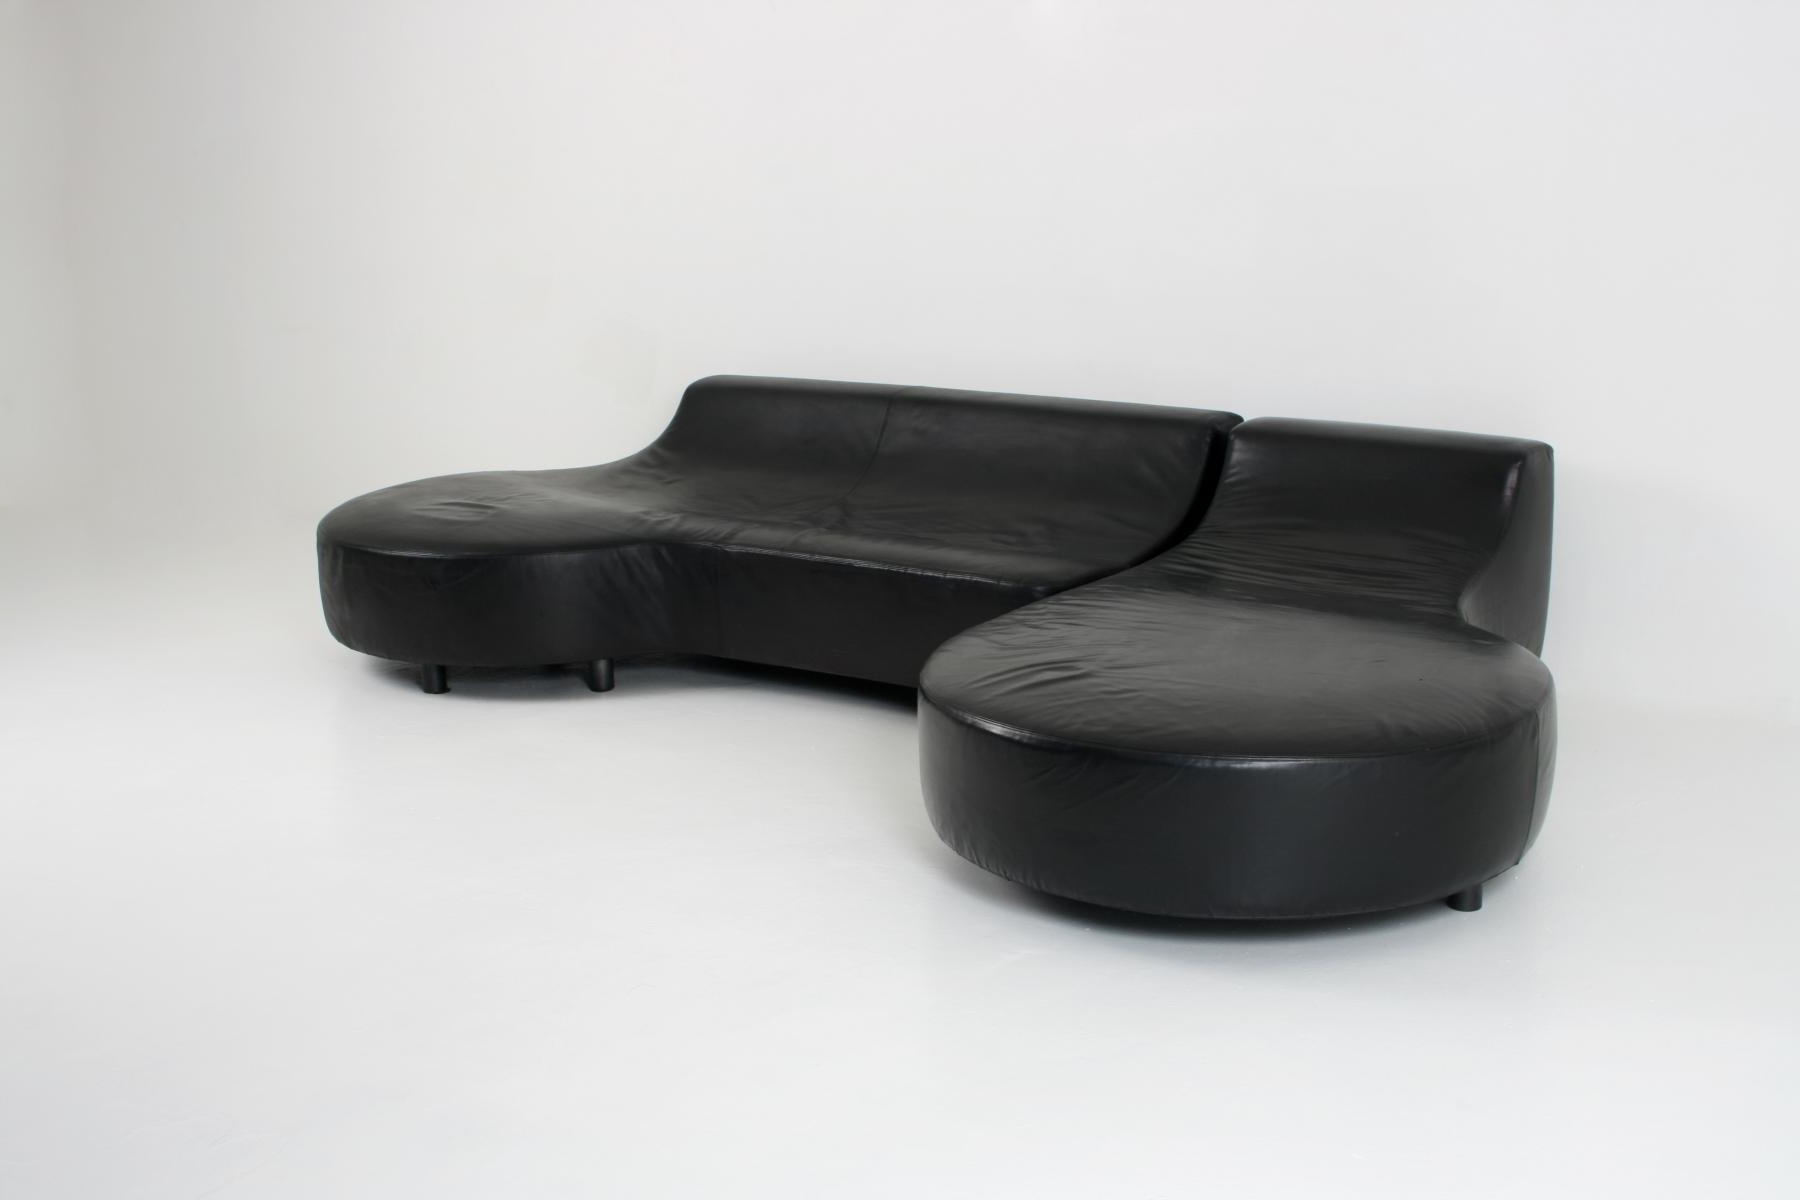 Recent Black Leather Chaise Loungerodolfo Dordini For Minotti For Intended For Black Leather Chaise Lounges (View 11 of 15)